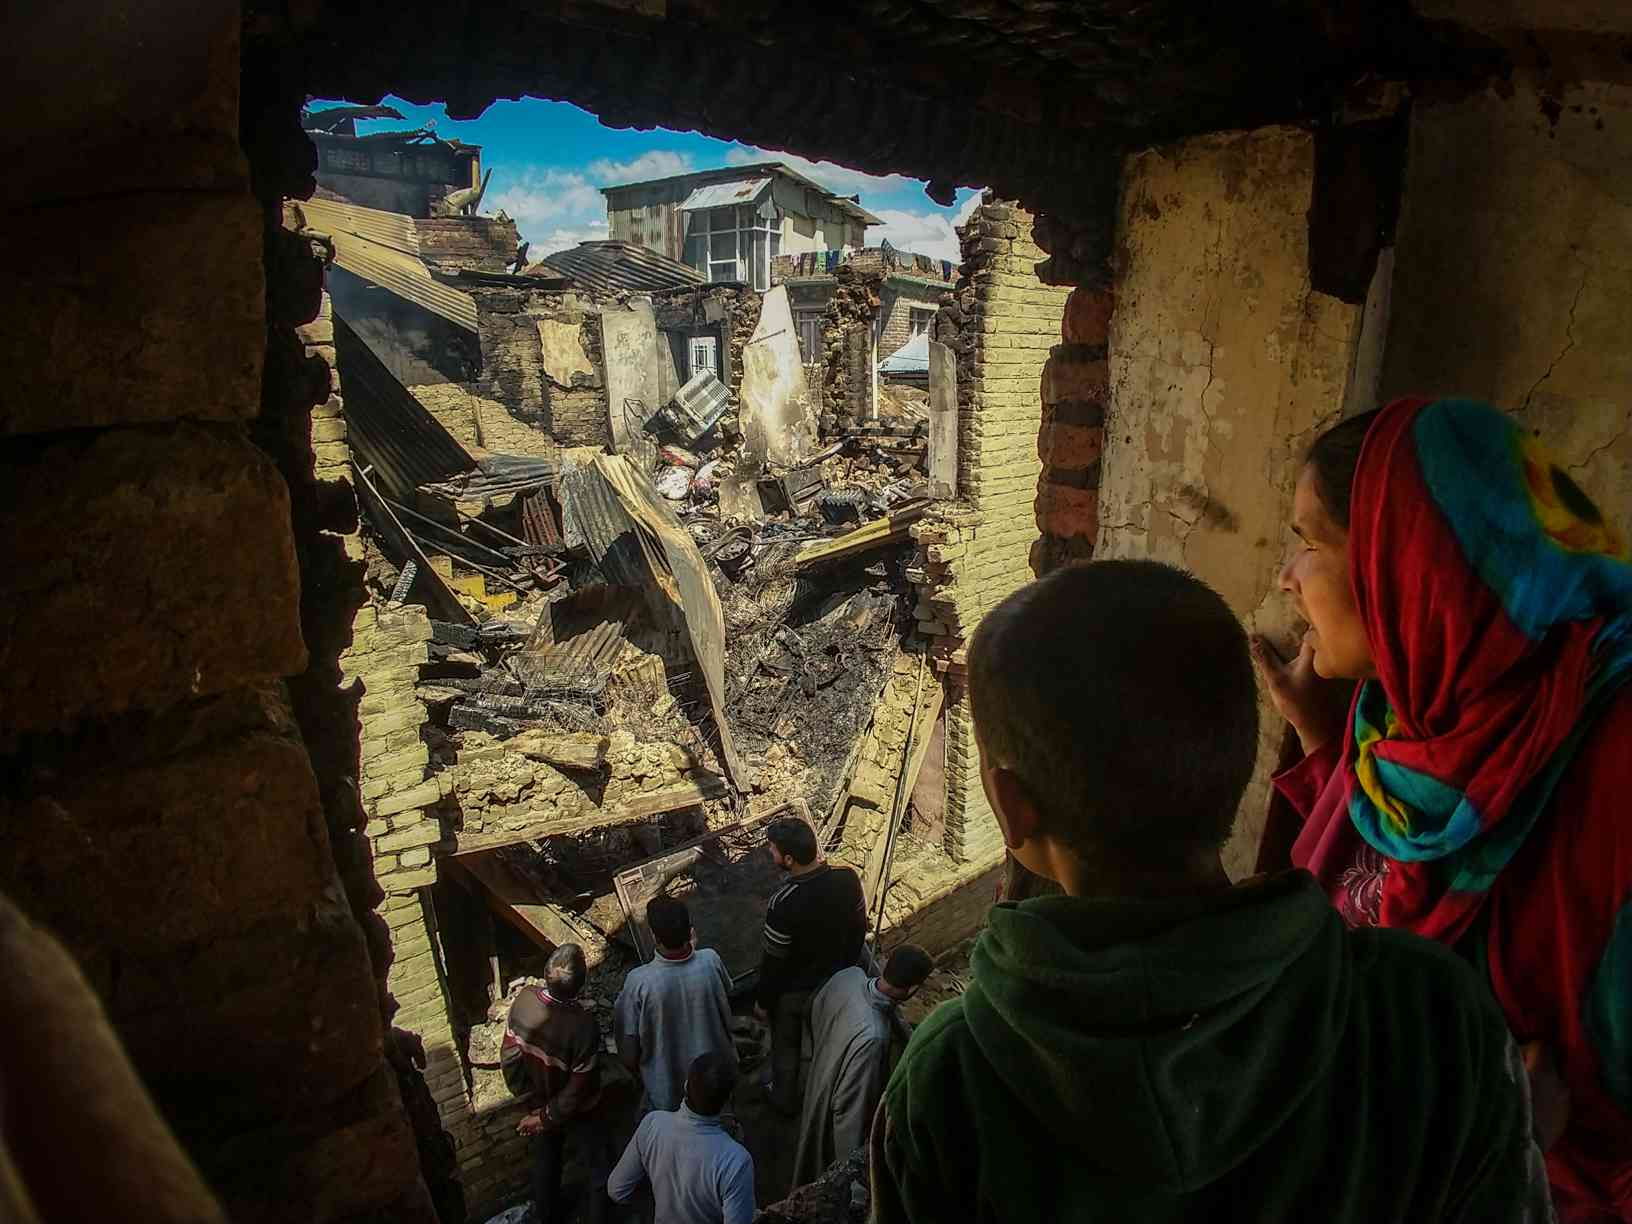 The rubble of houses destroyed during a gunfight in Khudwani. Photo credit: Rayan Naqash